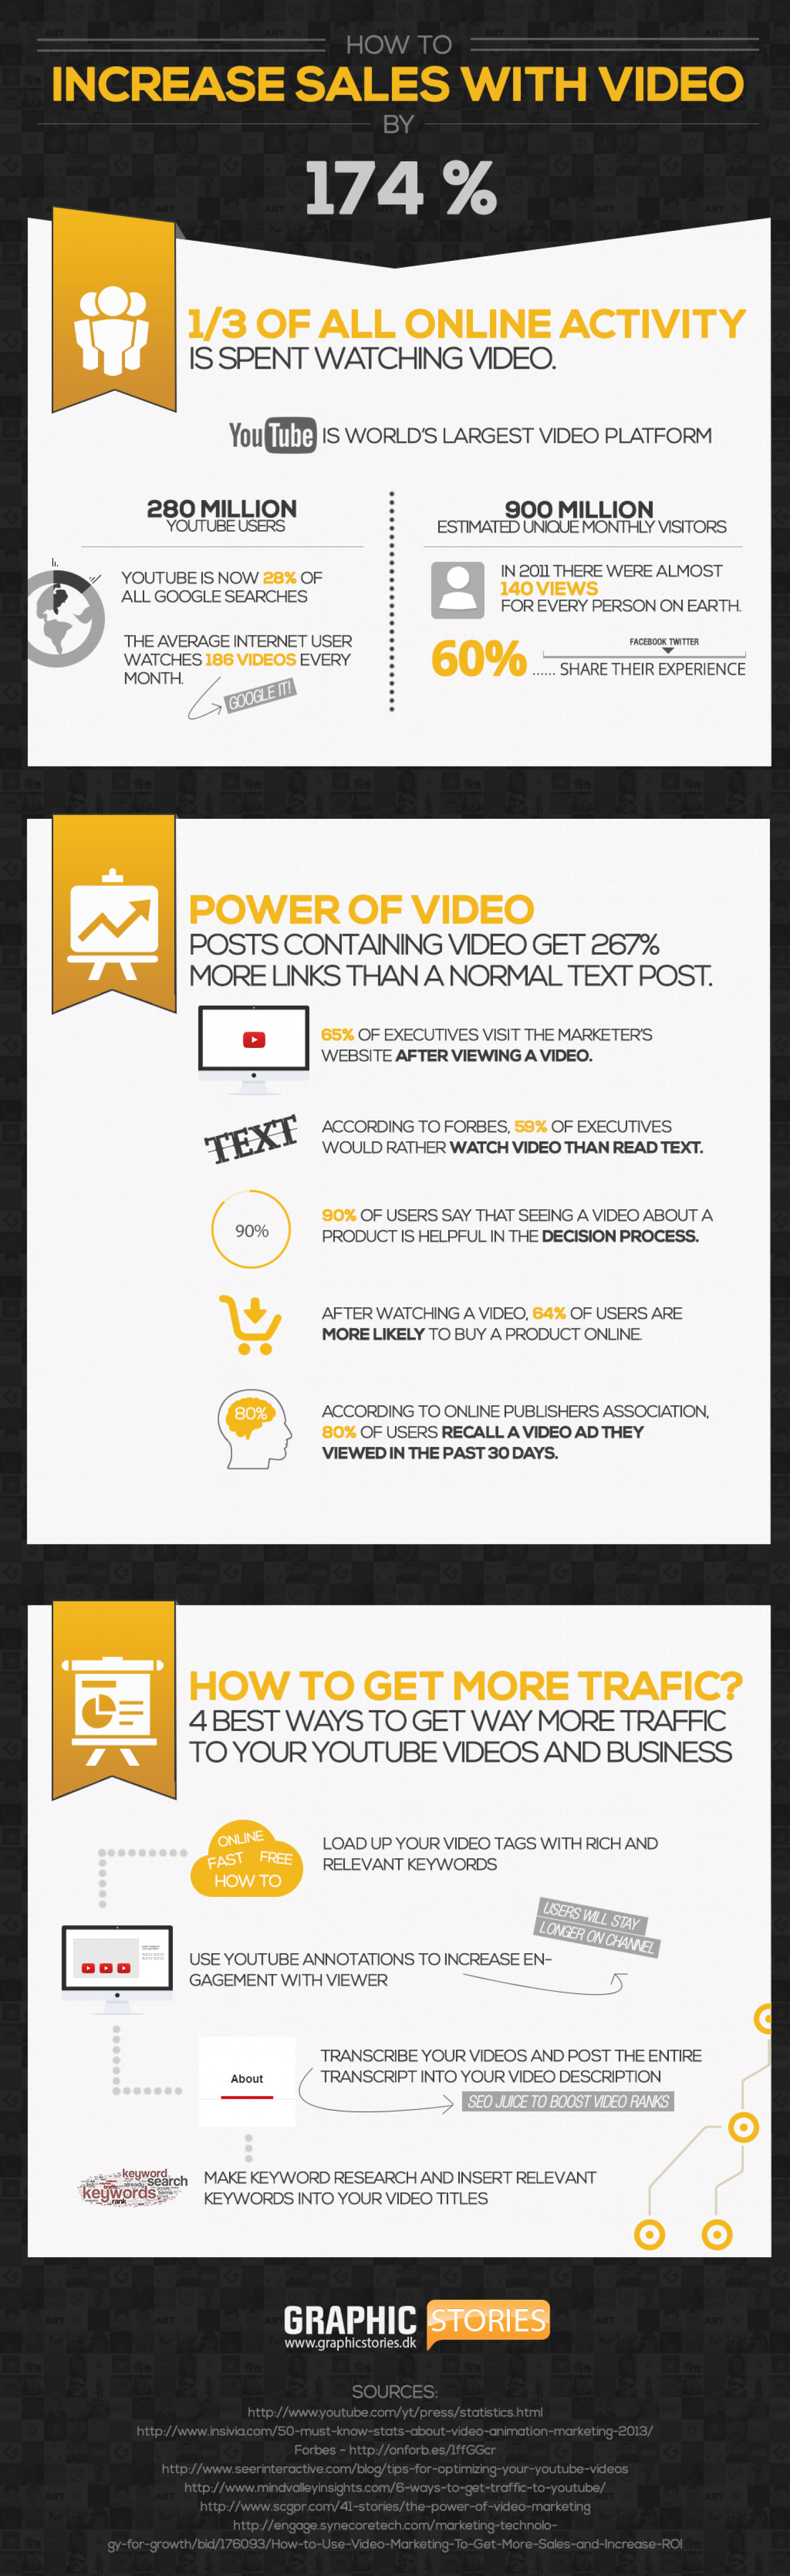 HOW TO INCREASE SALES WITH VIDEO Infographic